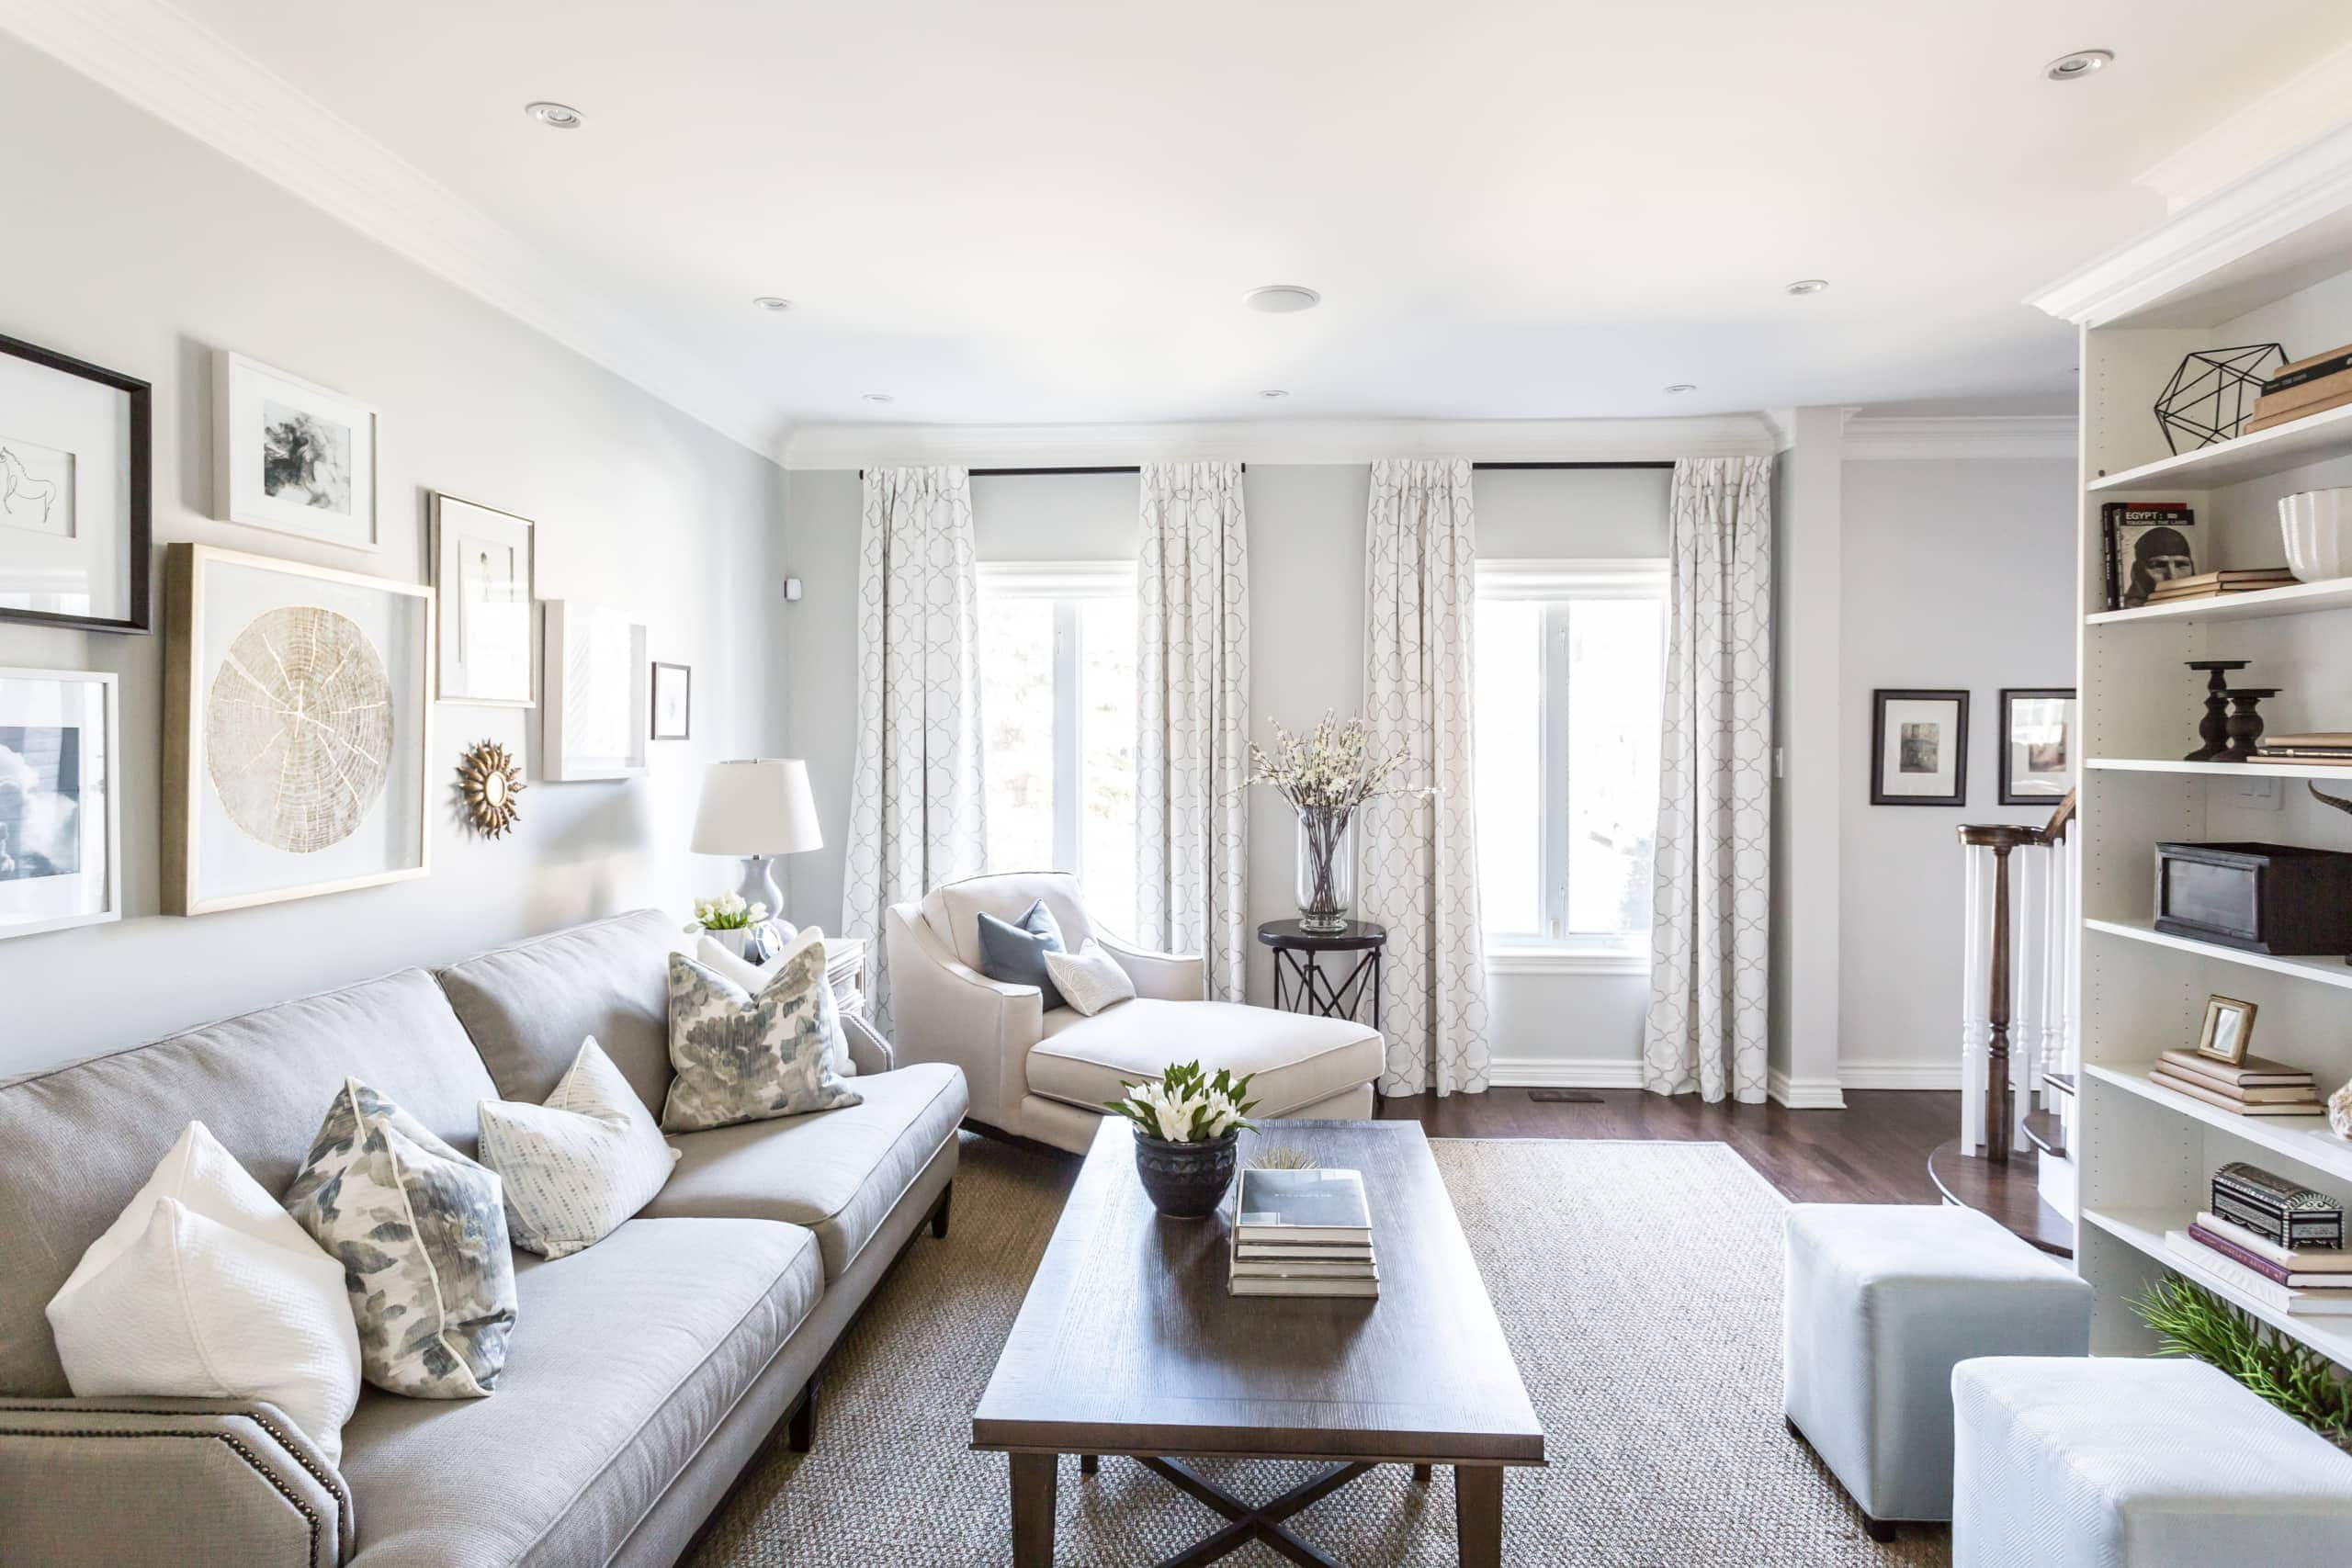 Bright, large living room with a focus on two windows